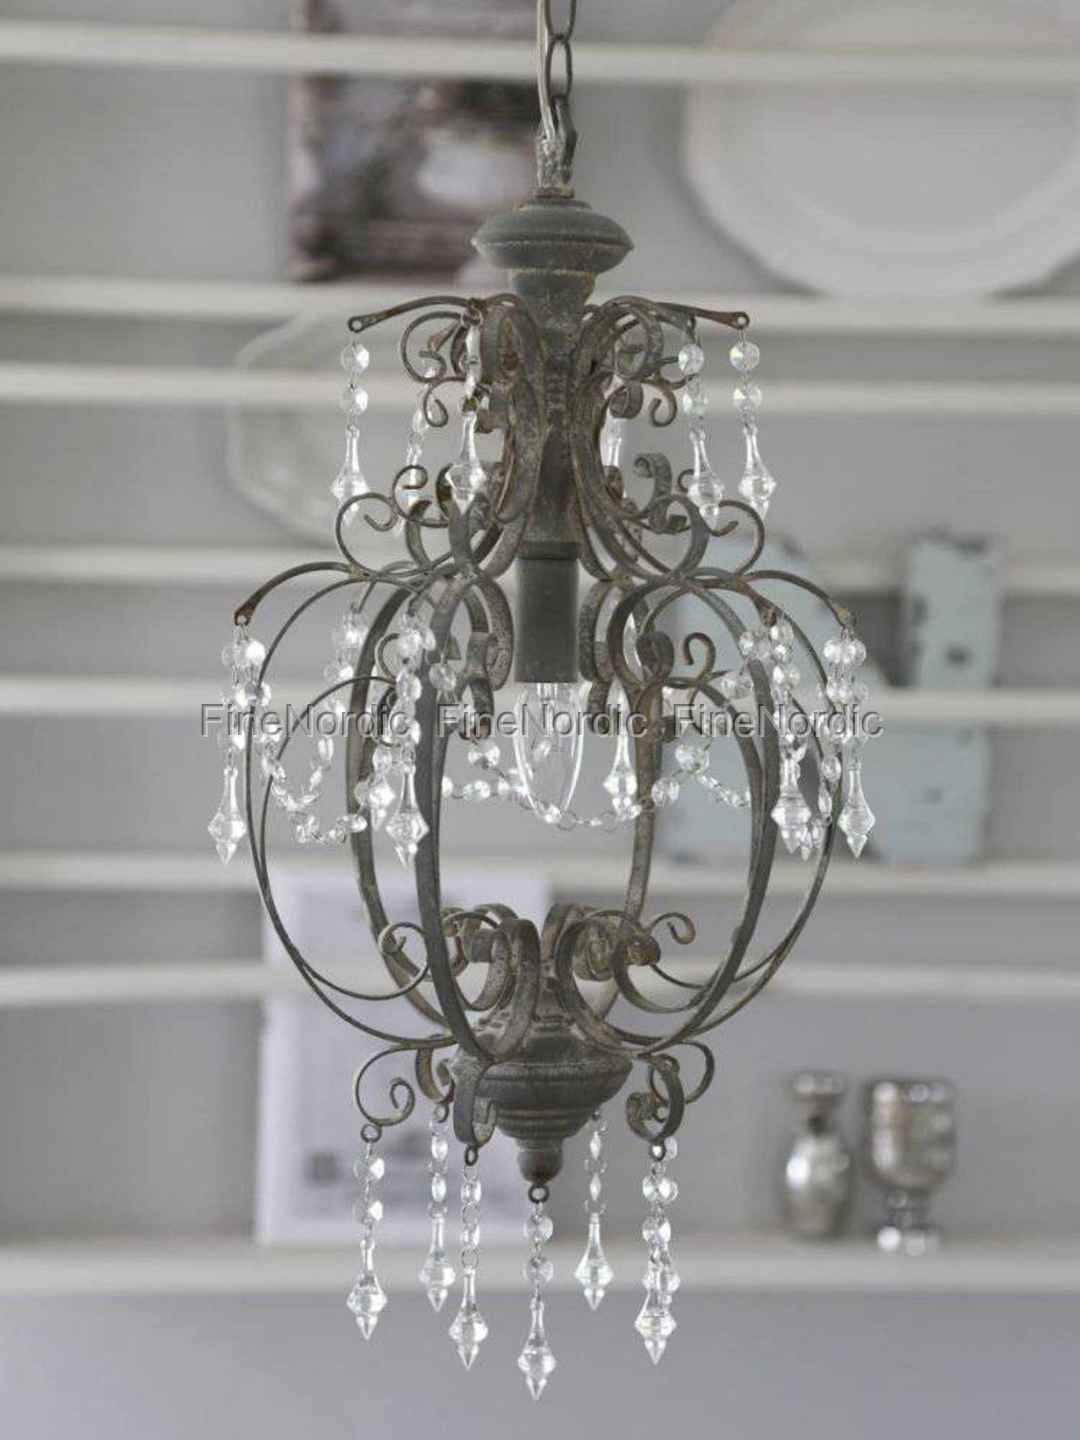 plated silver with antique tn stunning prisms preservation early nashville prism chandelier station crystal